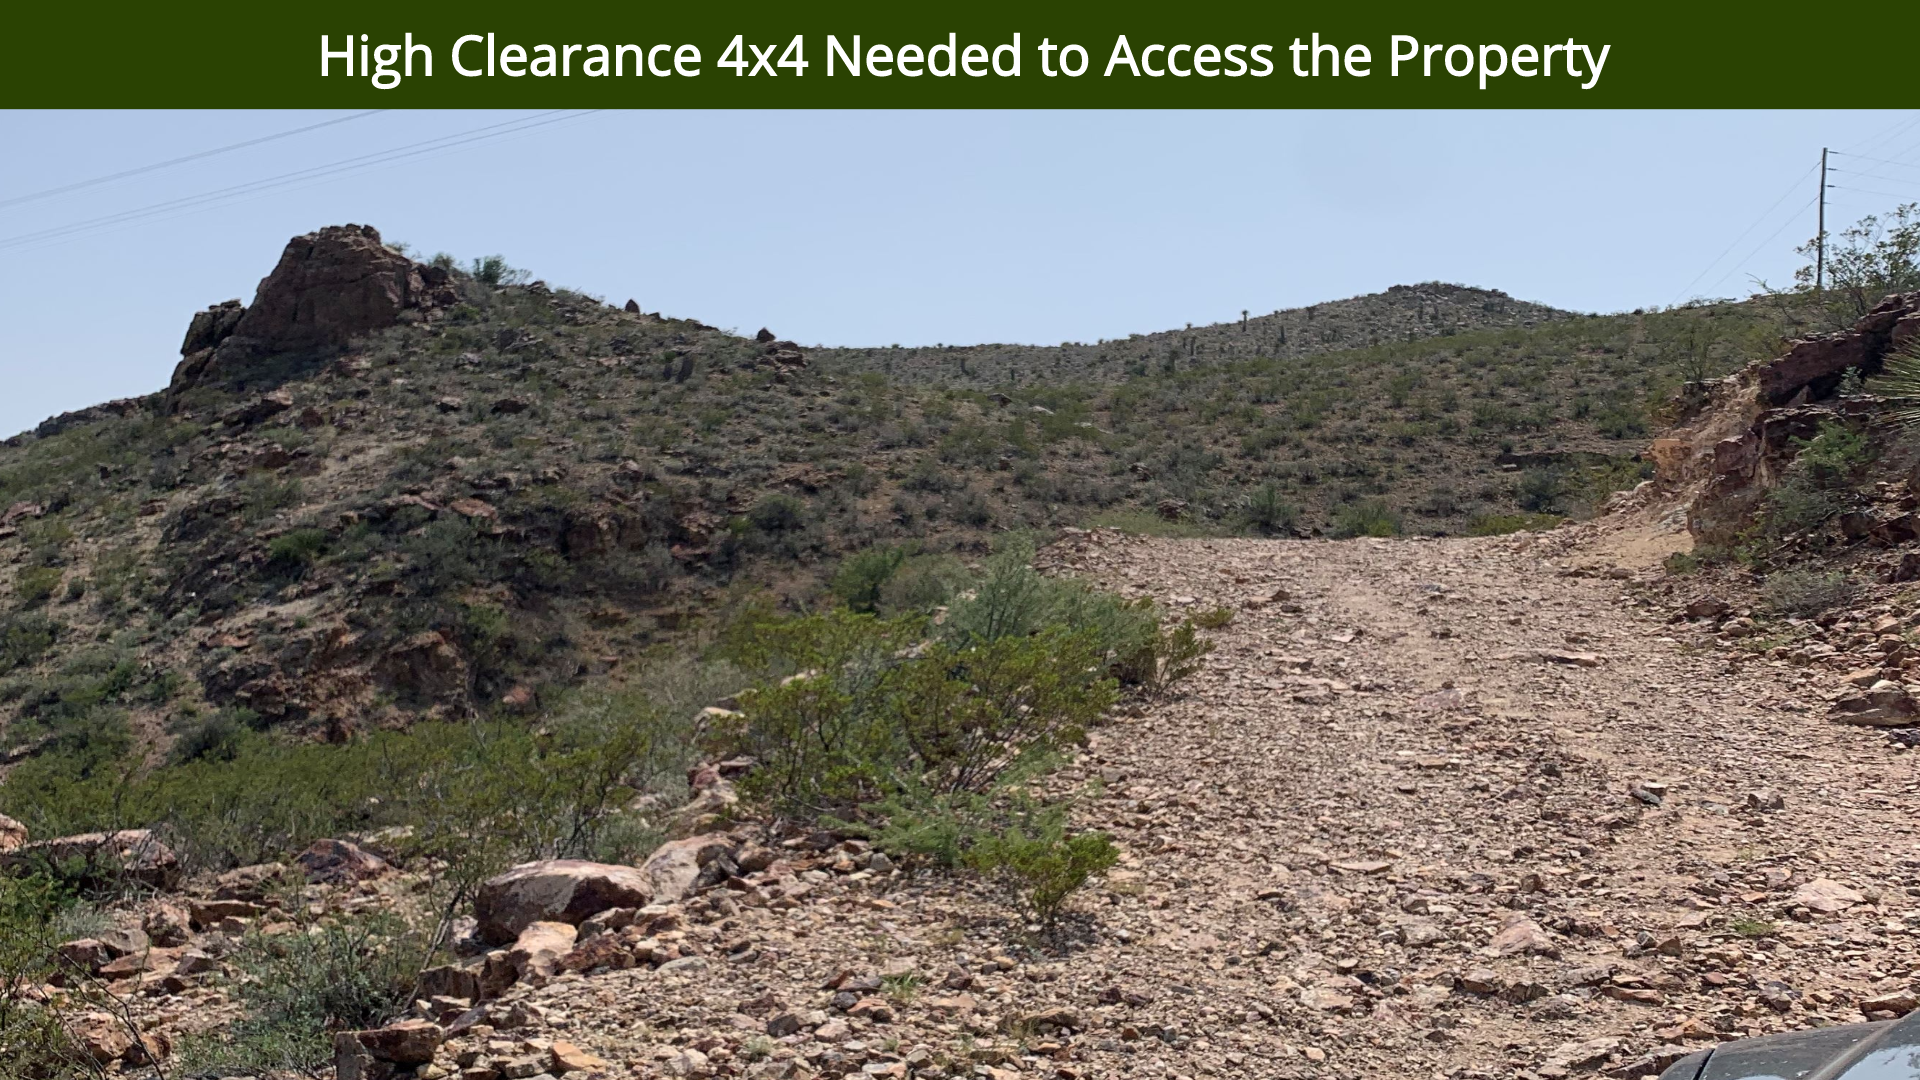 High Clearance 4x4 Needed to Access the